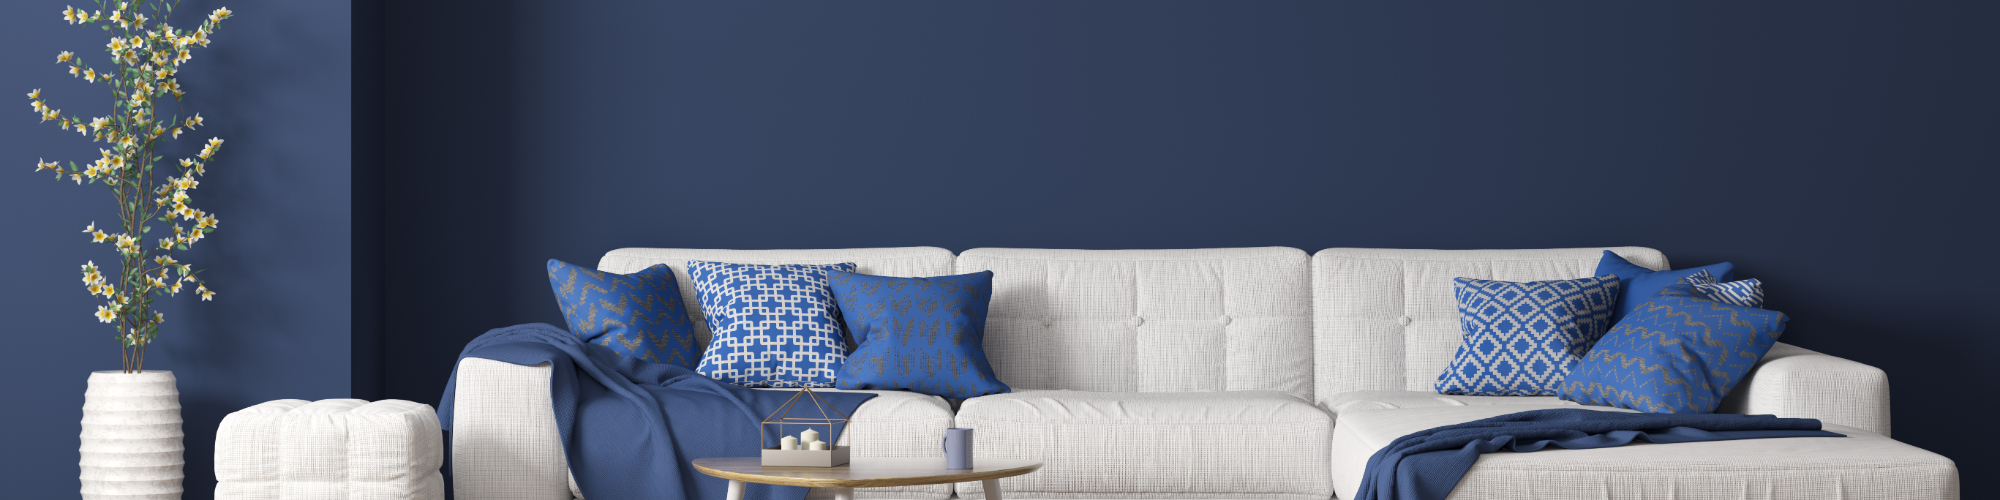 blue room with white couch